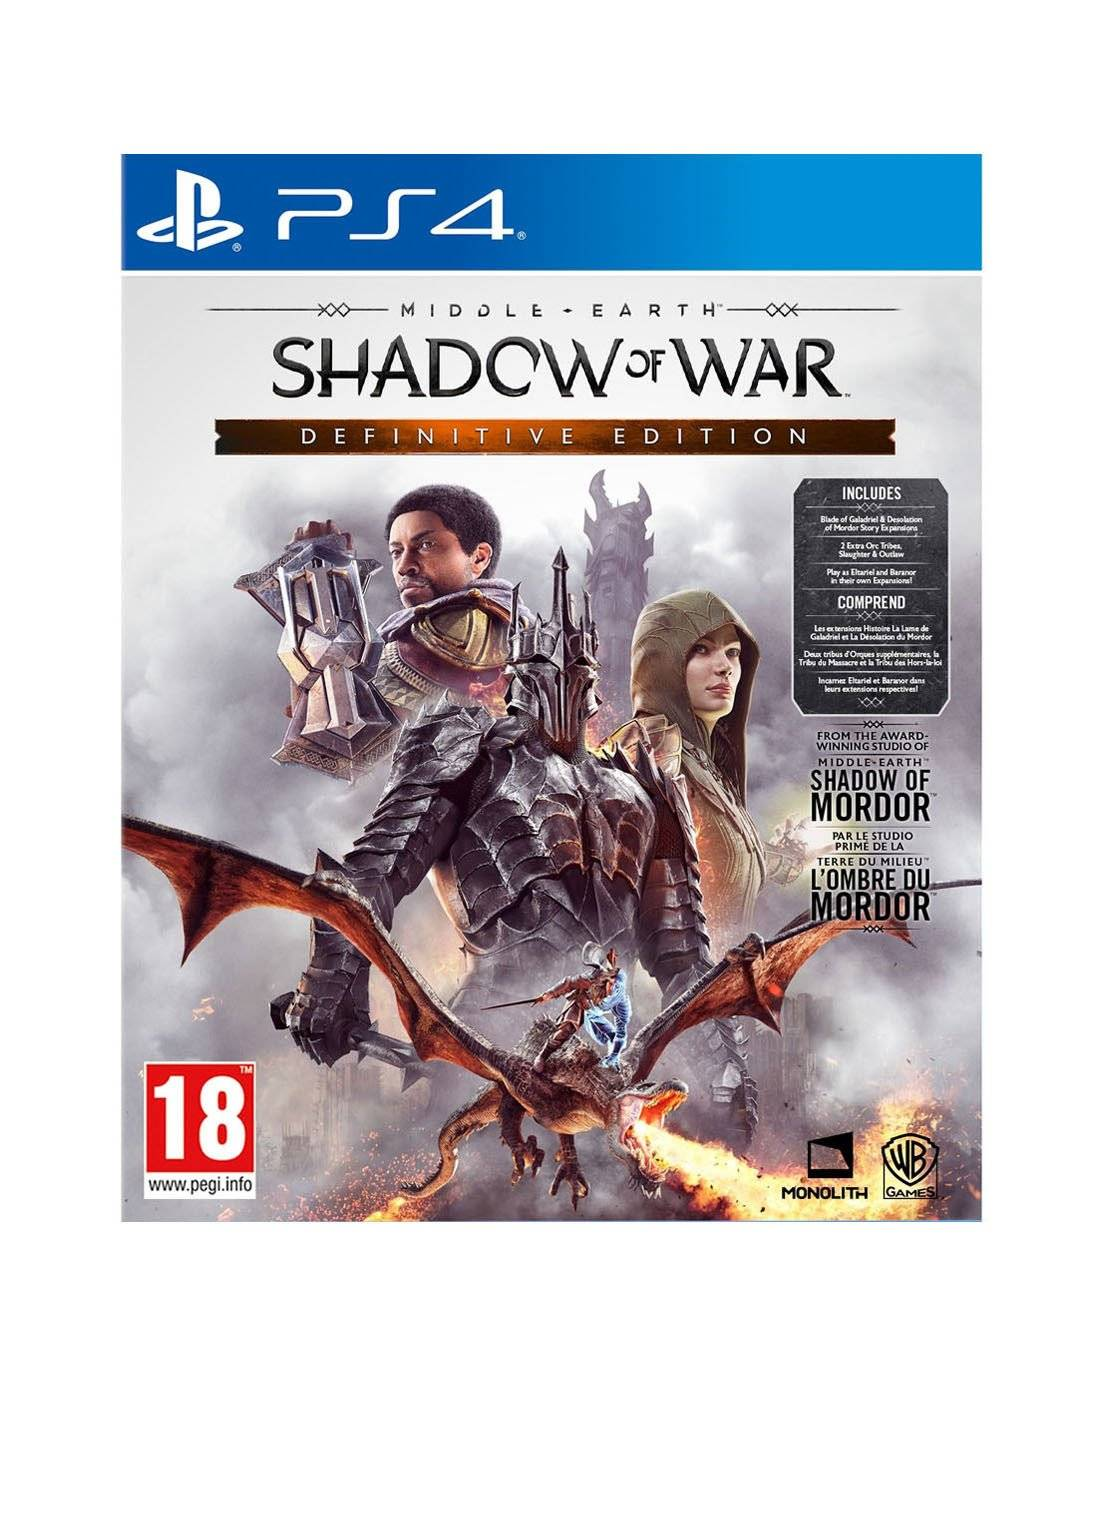 warner bros Middle Earth: Shadow of War (Definitive Edition) - PS4 -